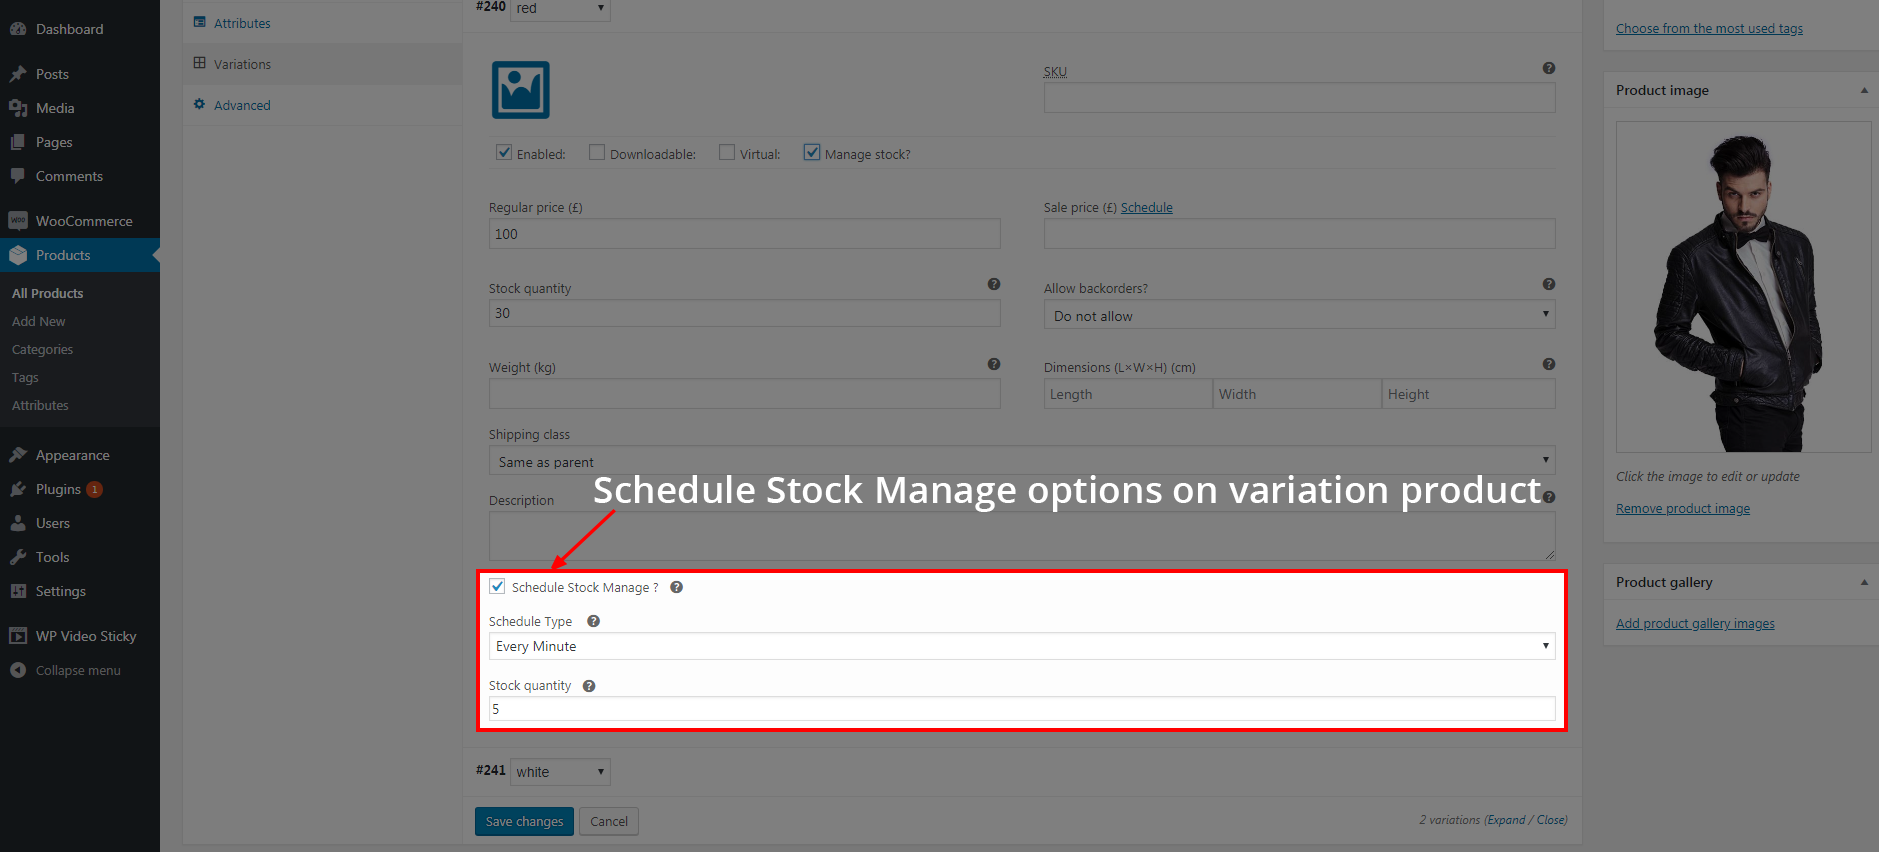 Schedule Stock Manage options on Variation product